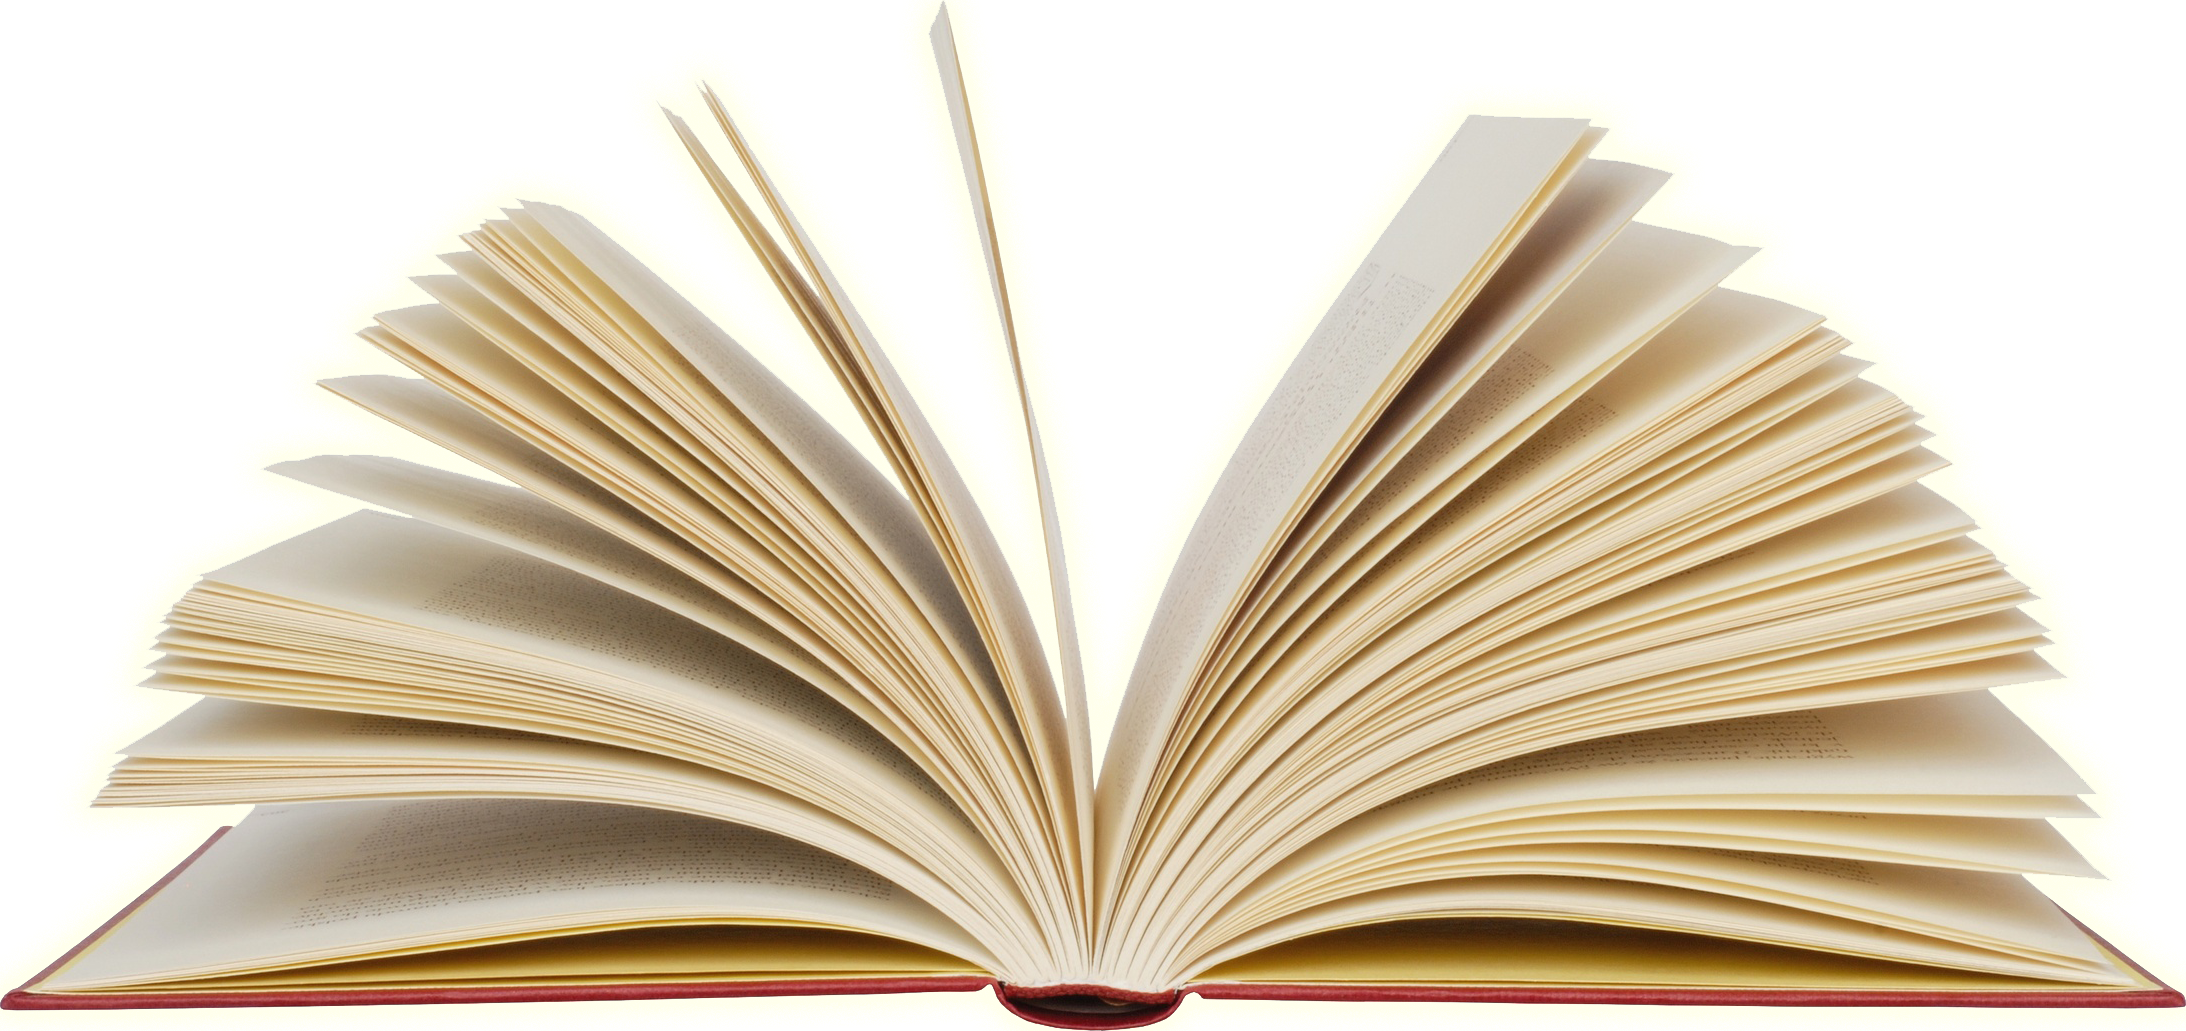 Book PNG images download, open book PNG